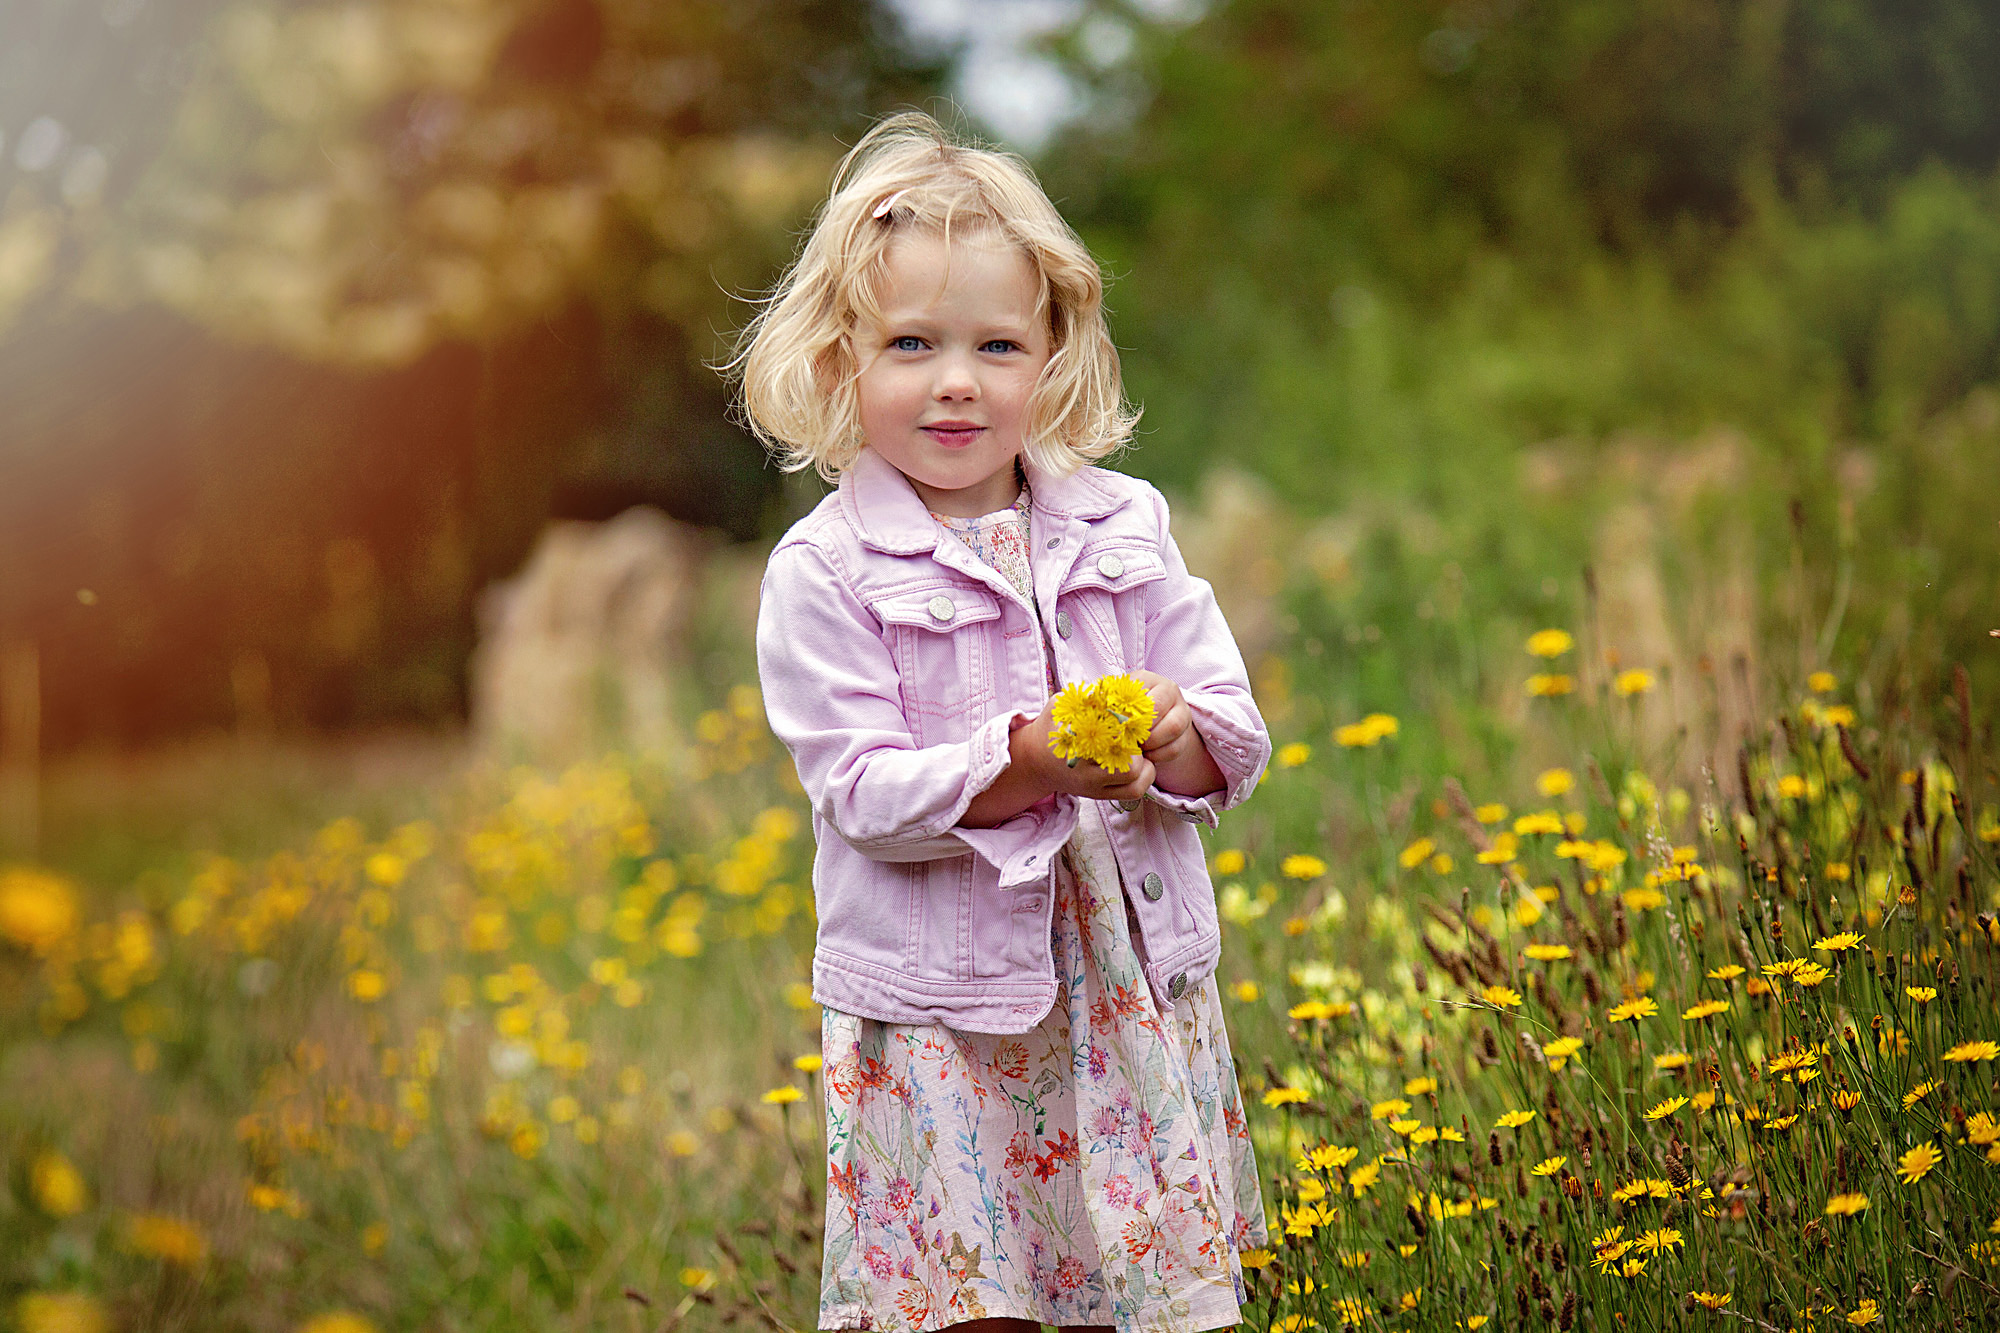 Timeless images in summer's wildflower meadows - The children are off school and need to blow off steam. Let me wear them out for you!